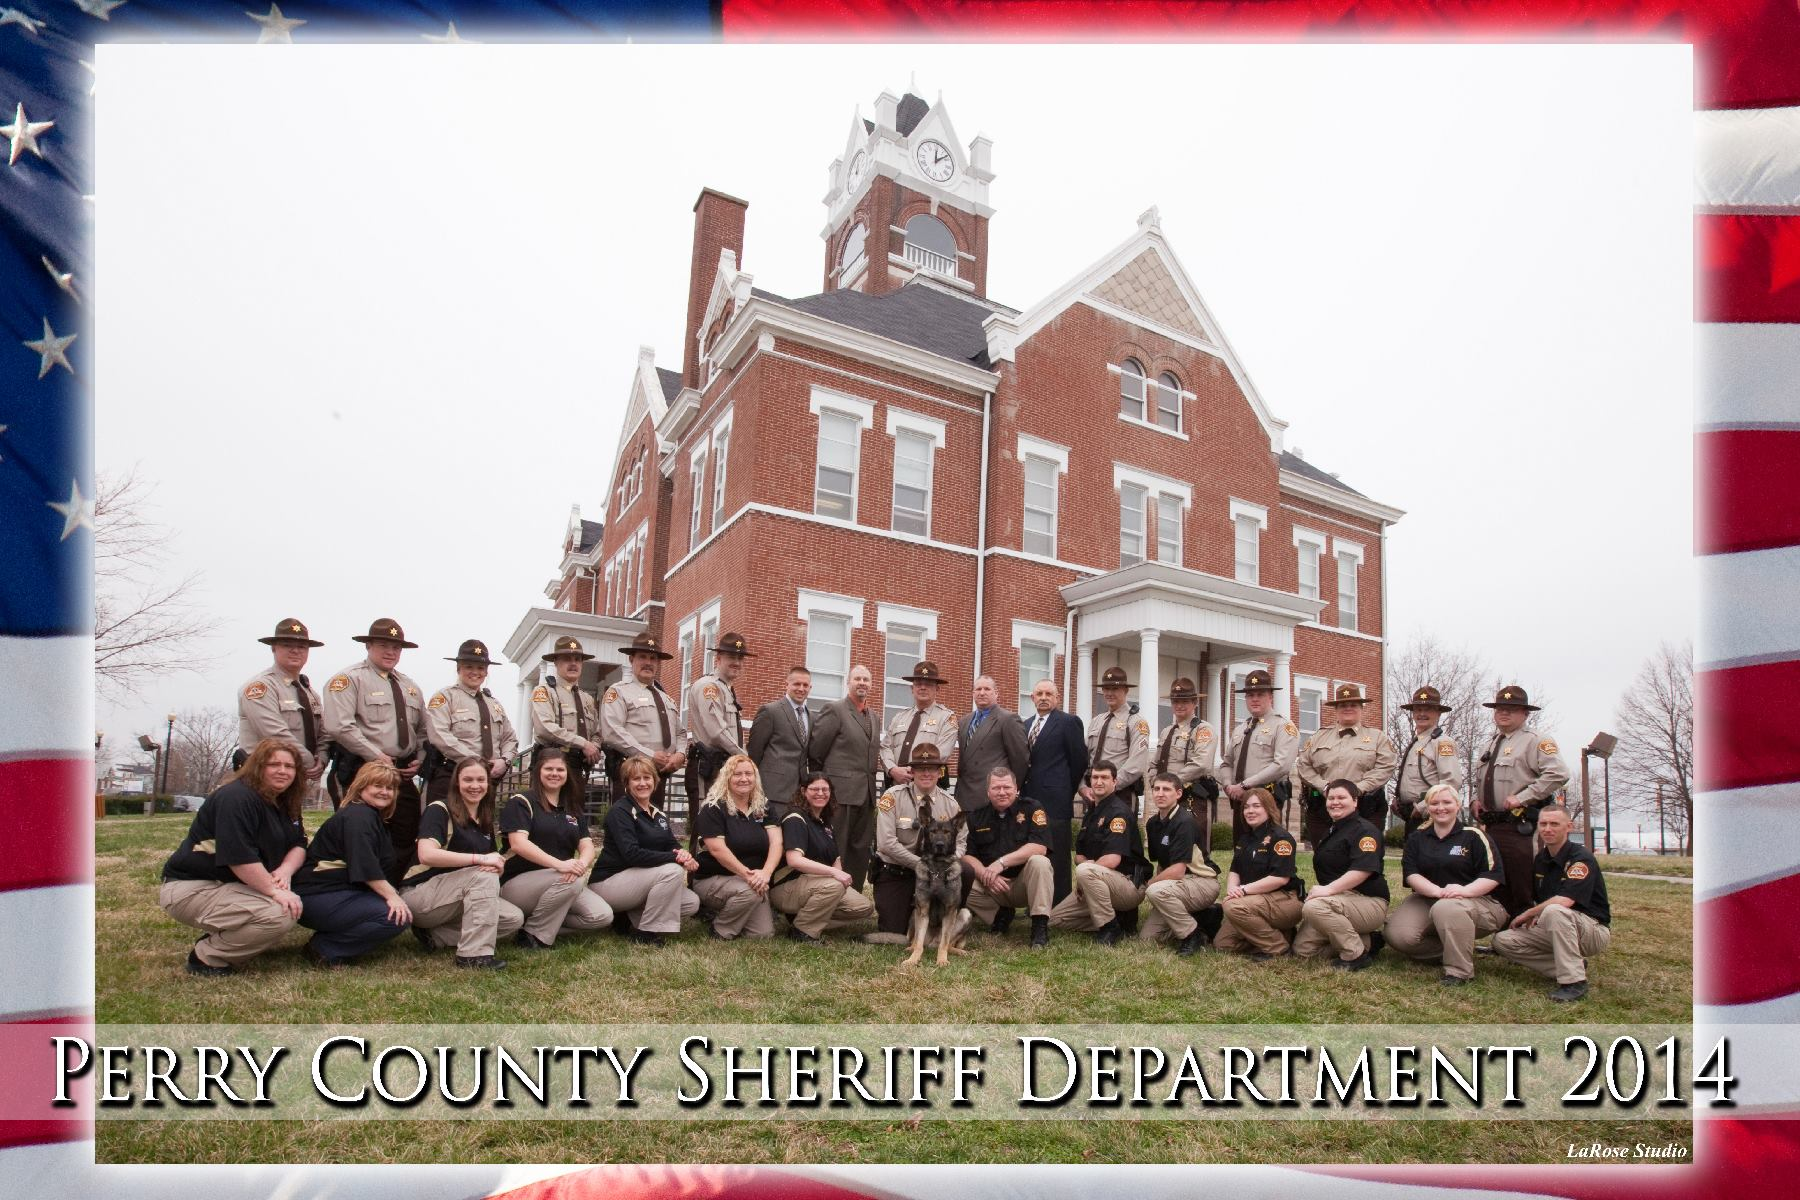 2014 Sheriffs Office Photograph.jpg